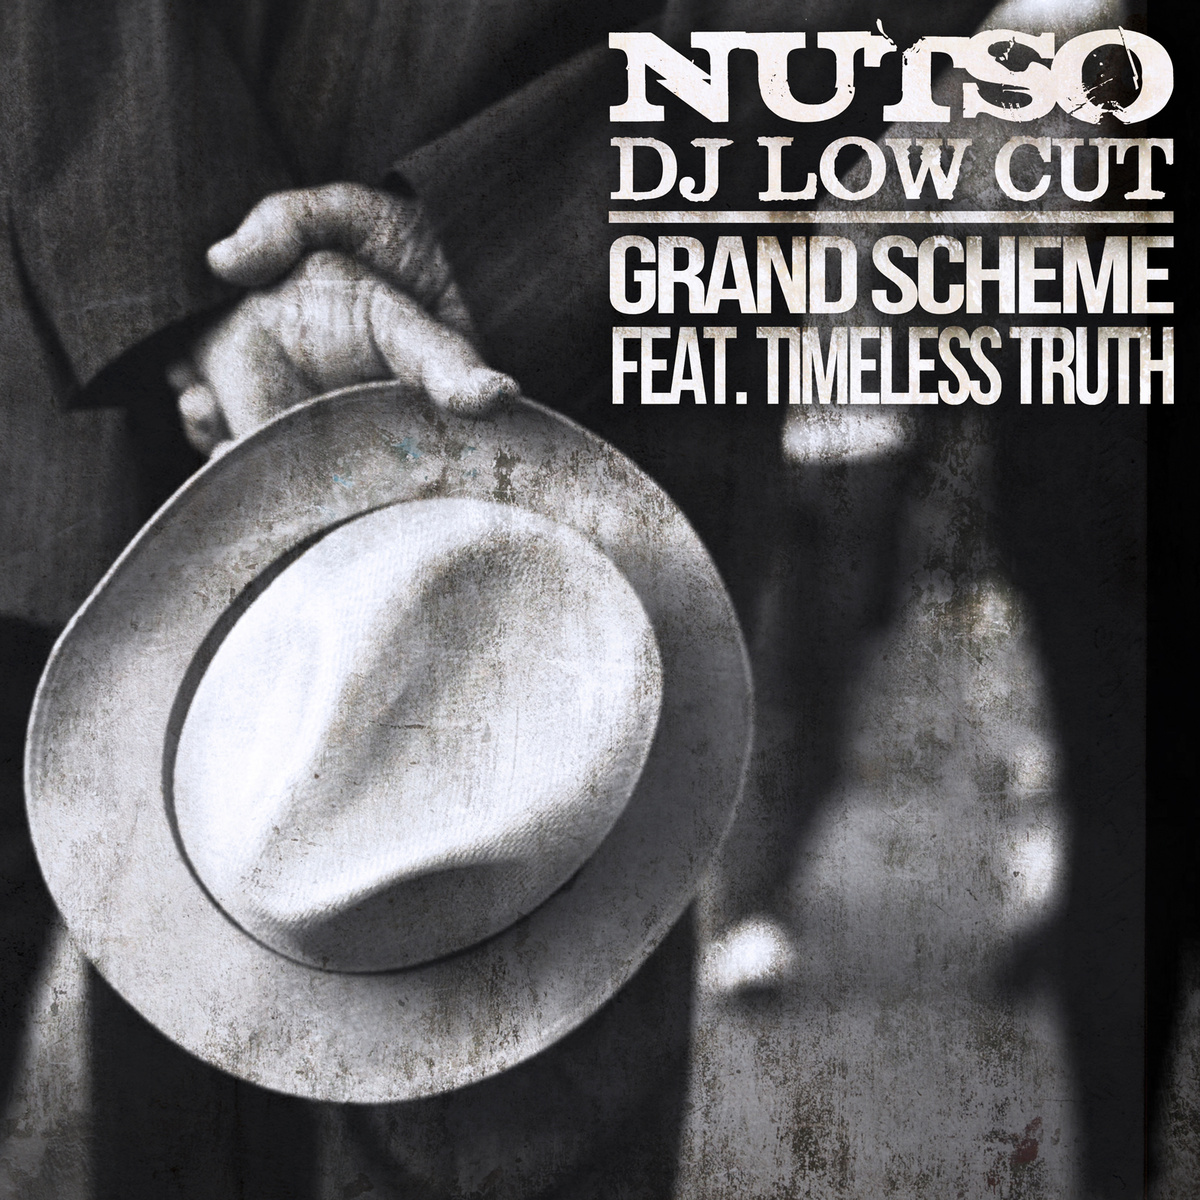 Nutso & Dj Low Cut - Grand Scheme ft. Timeless Truth (Cuts Dj Modesty) [mp3]